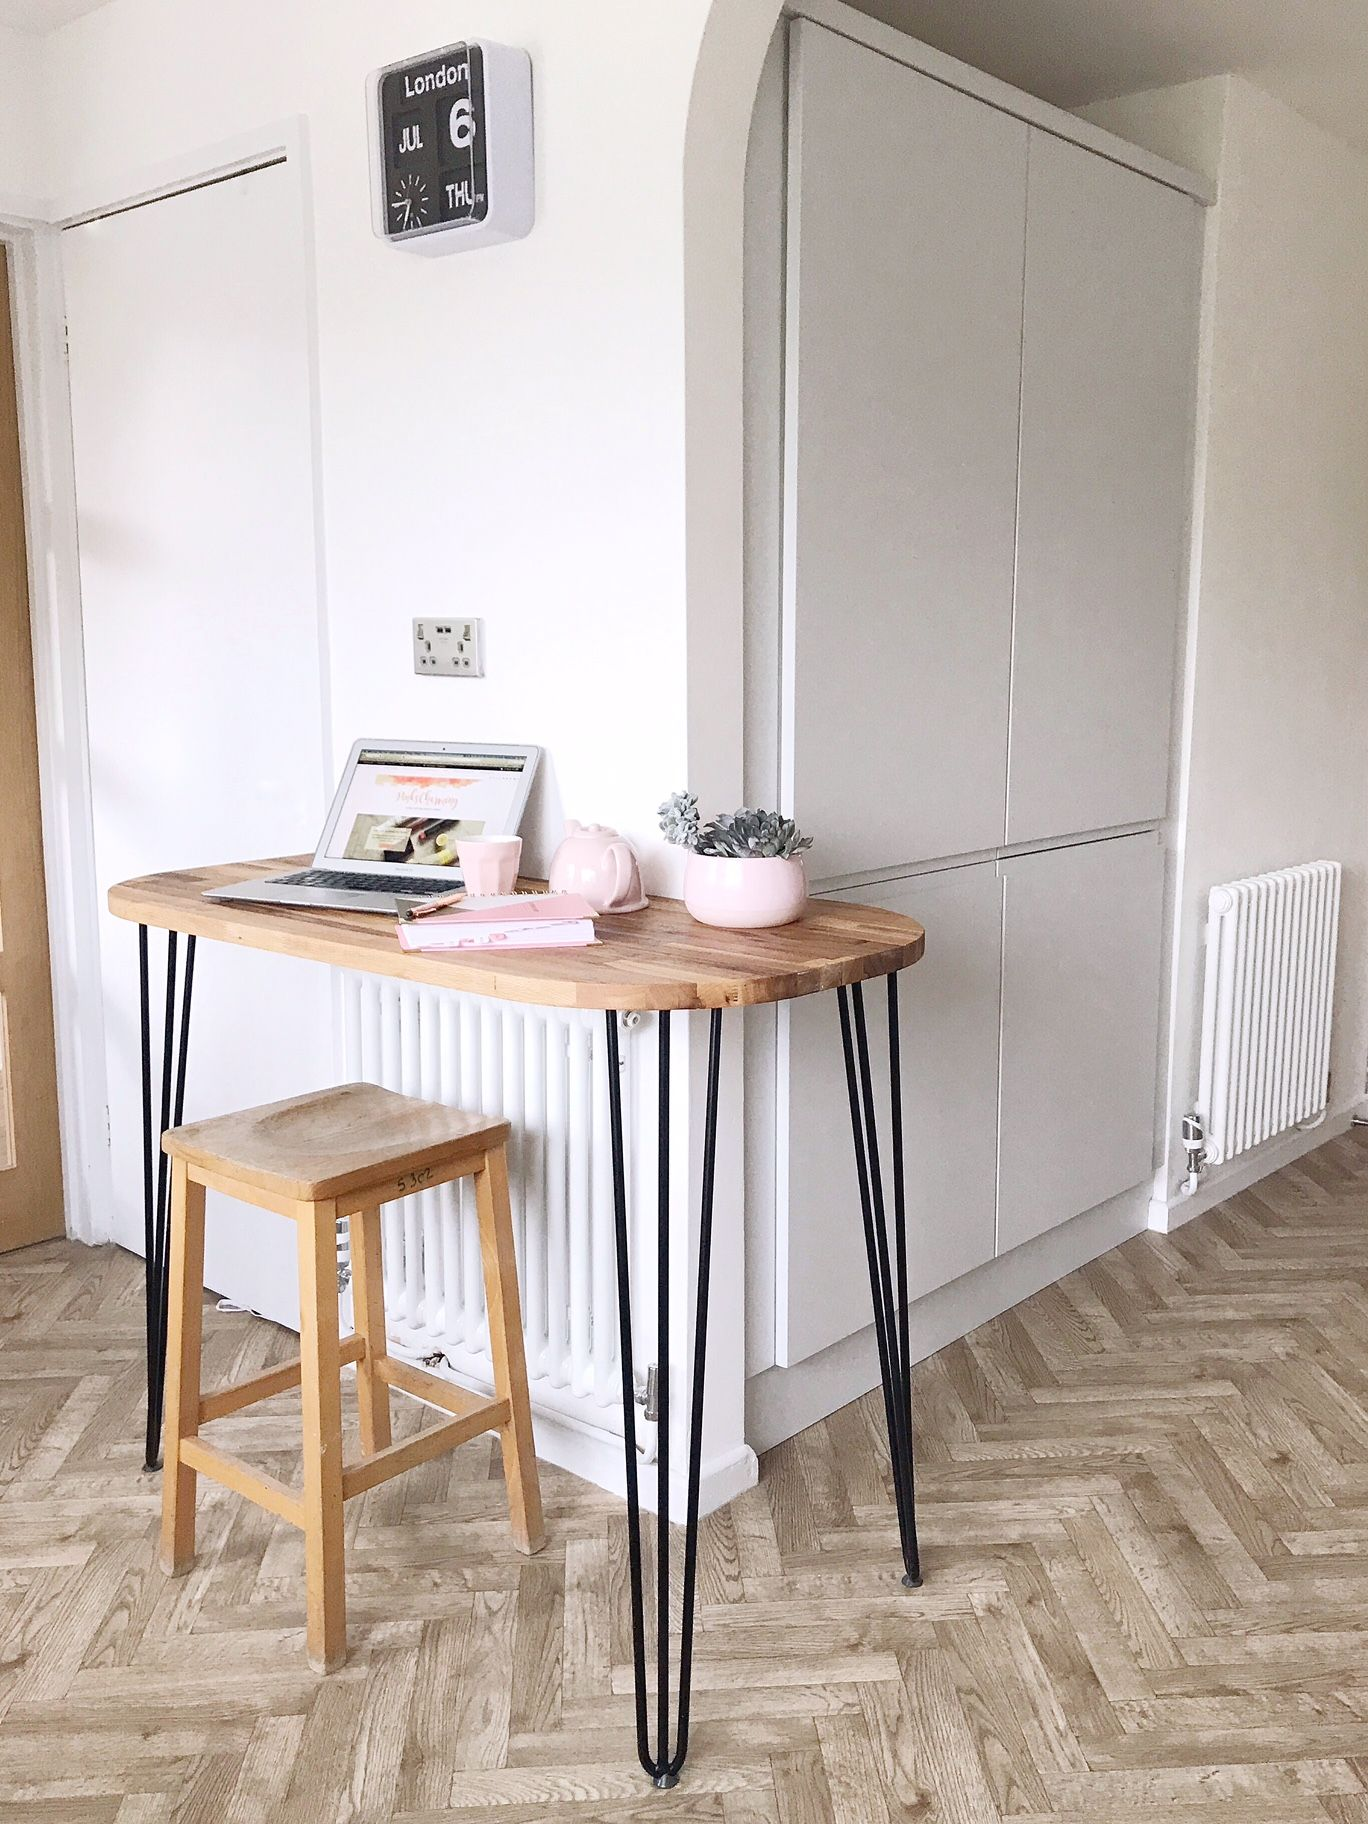 Ikea Breakfast Bar How To Make A Mid Century Inspired Breakfast Bar With Hairpin Legs